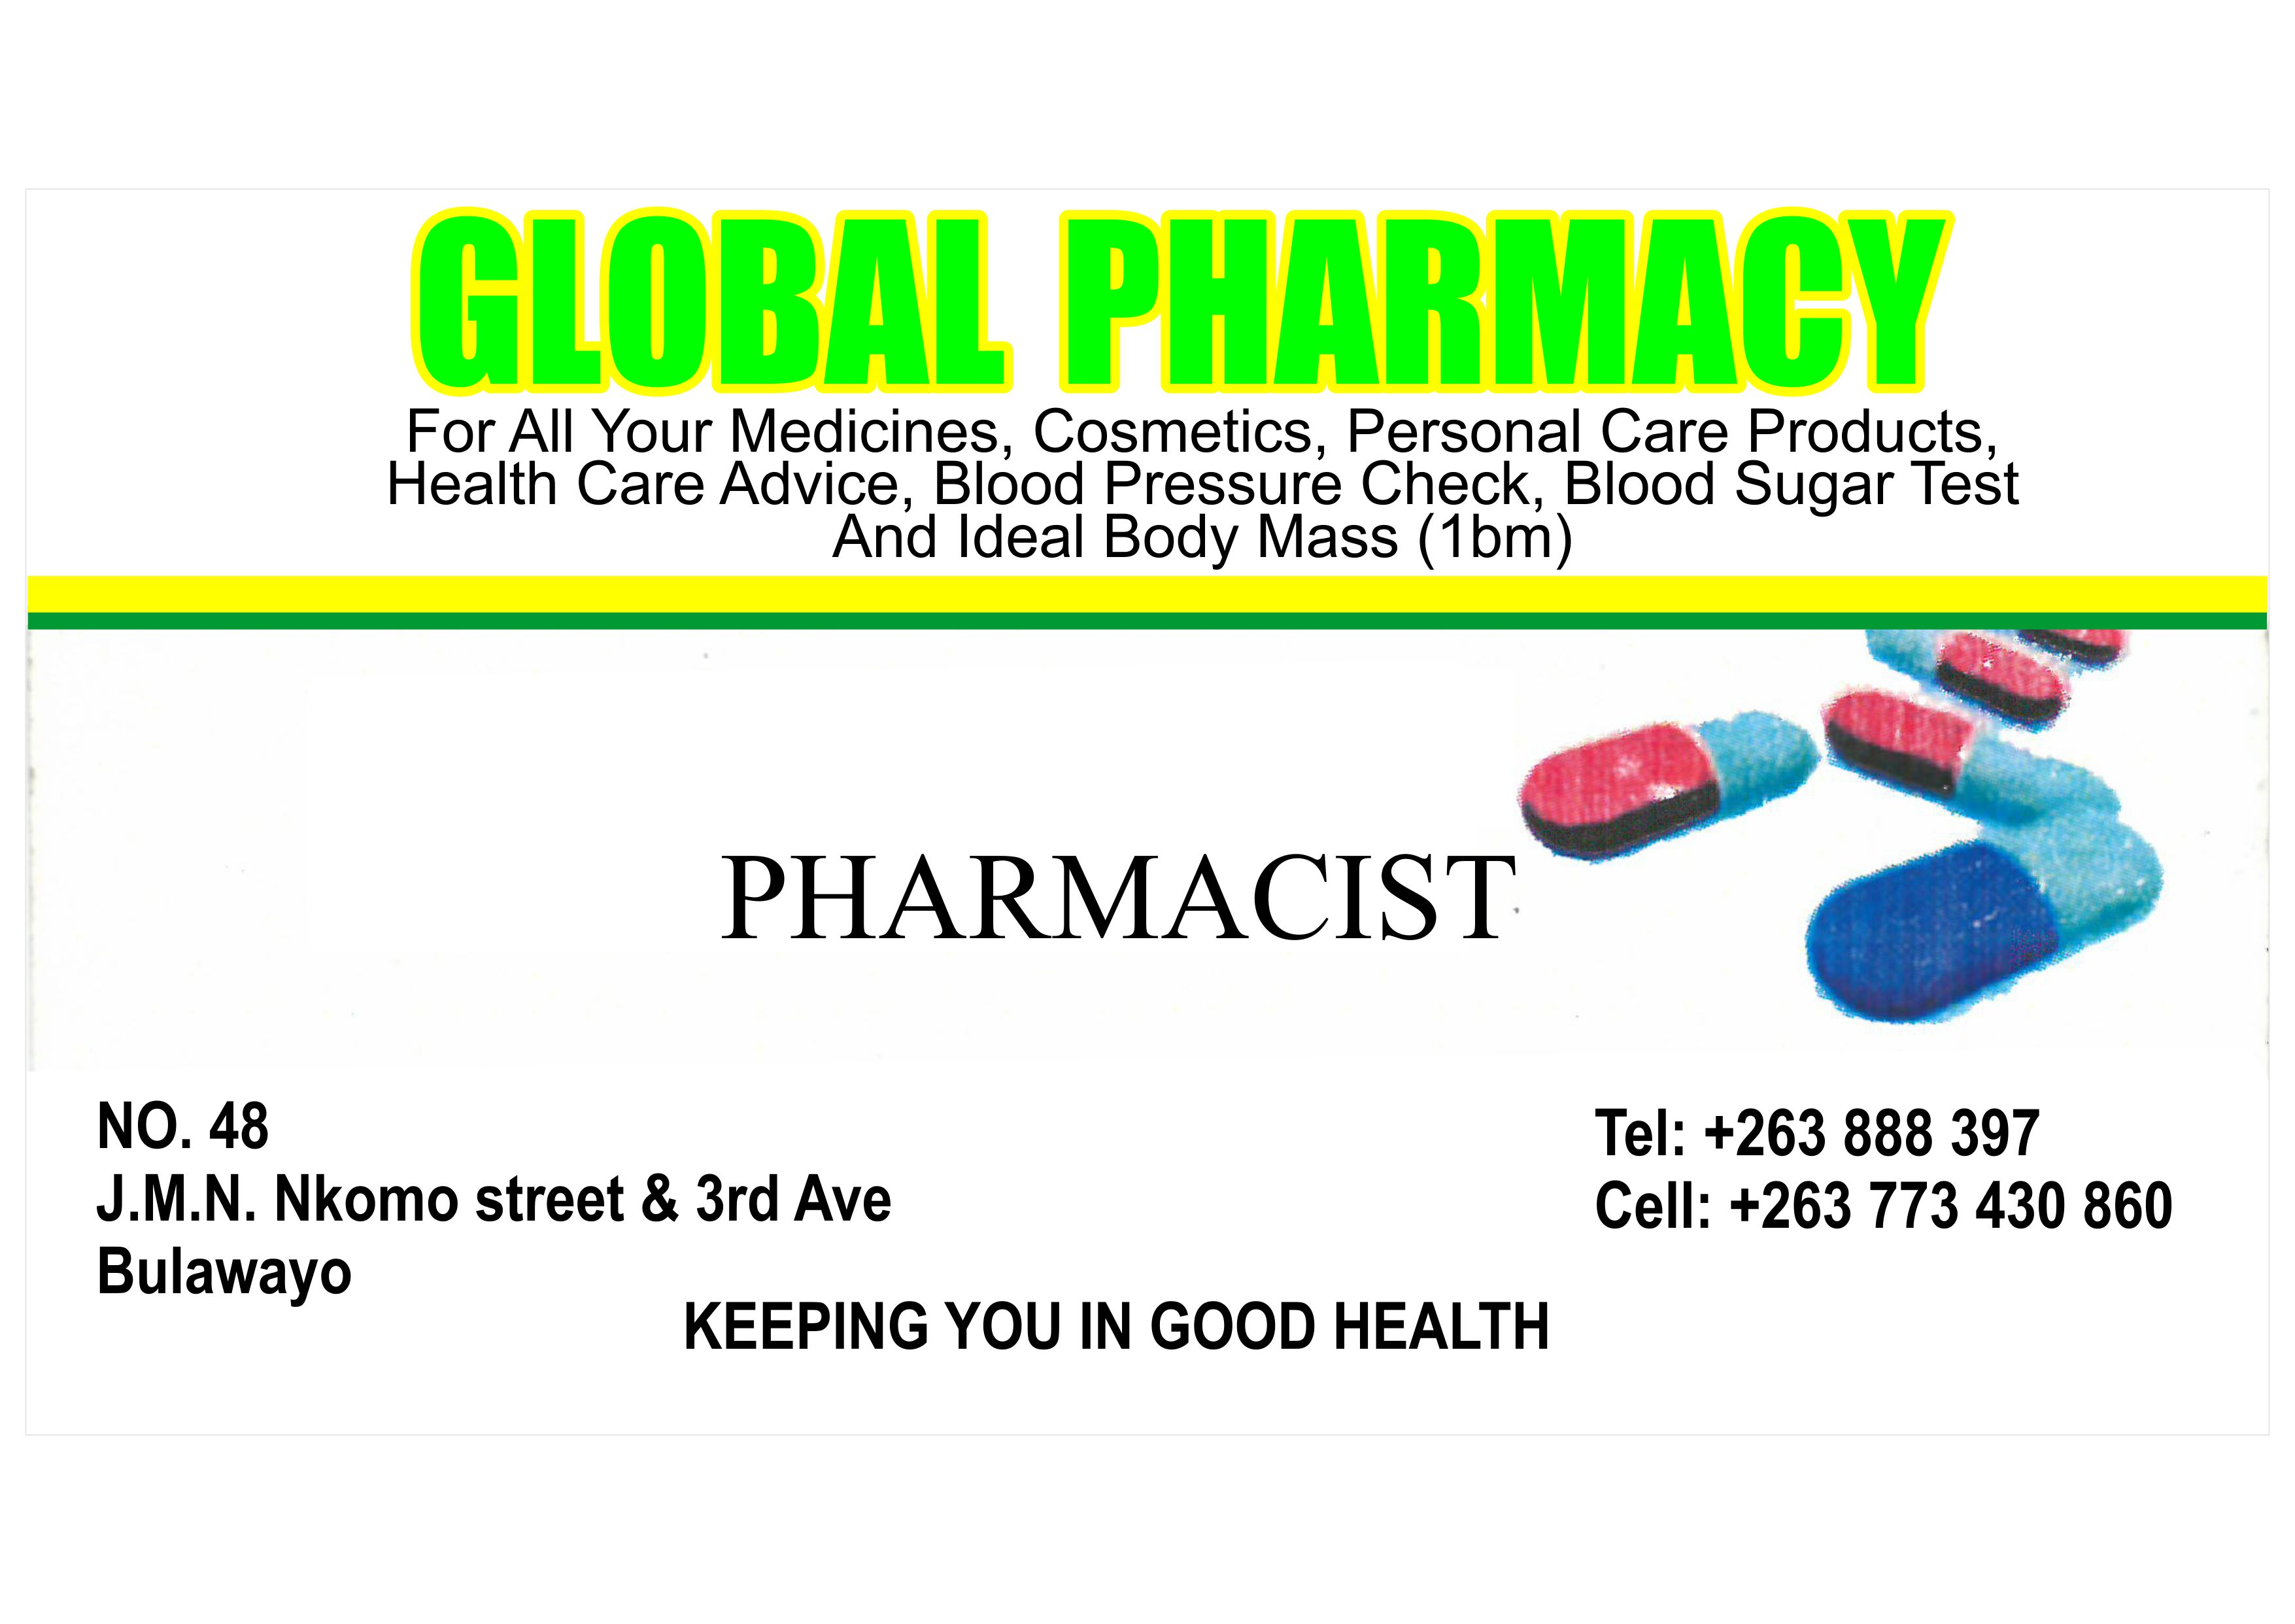 Global Pharmacy | Bluebook business directory